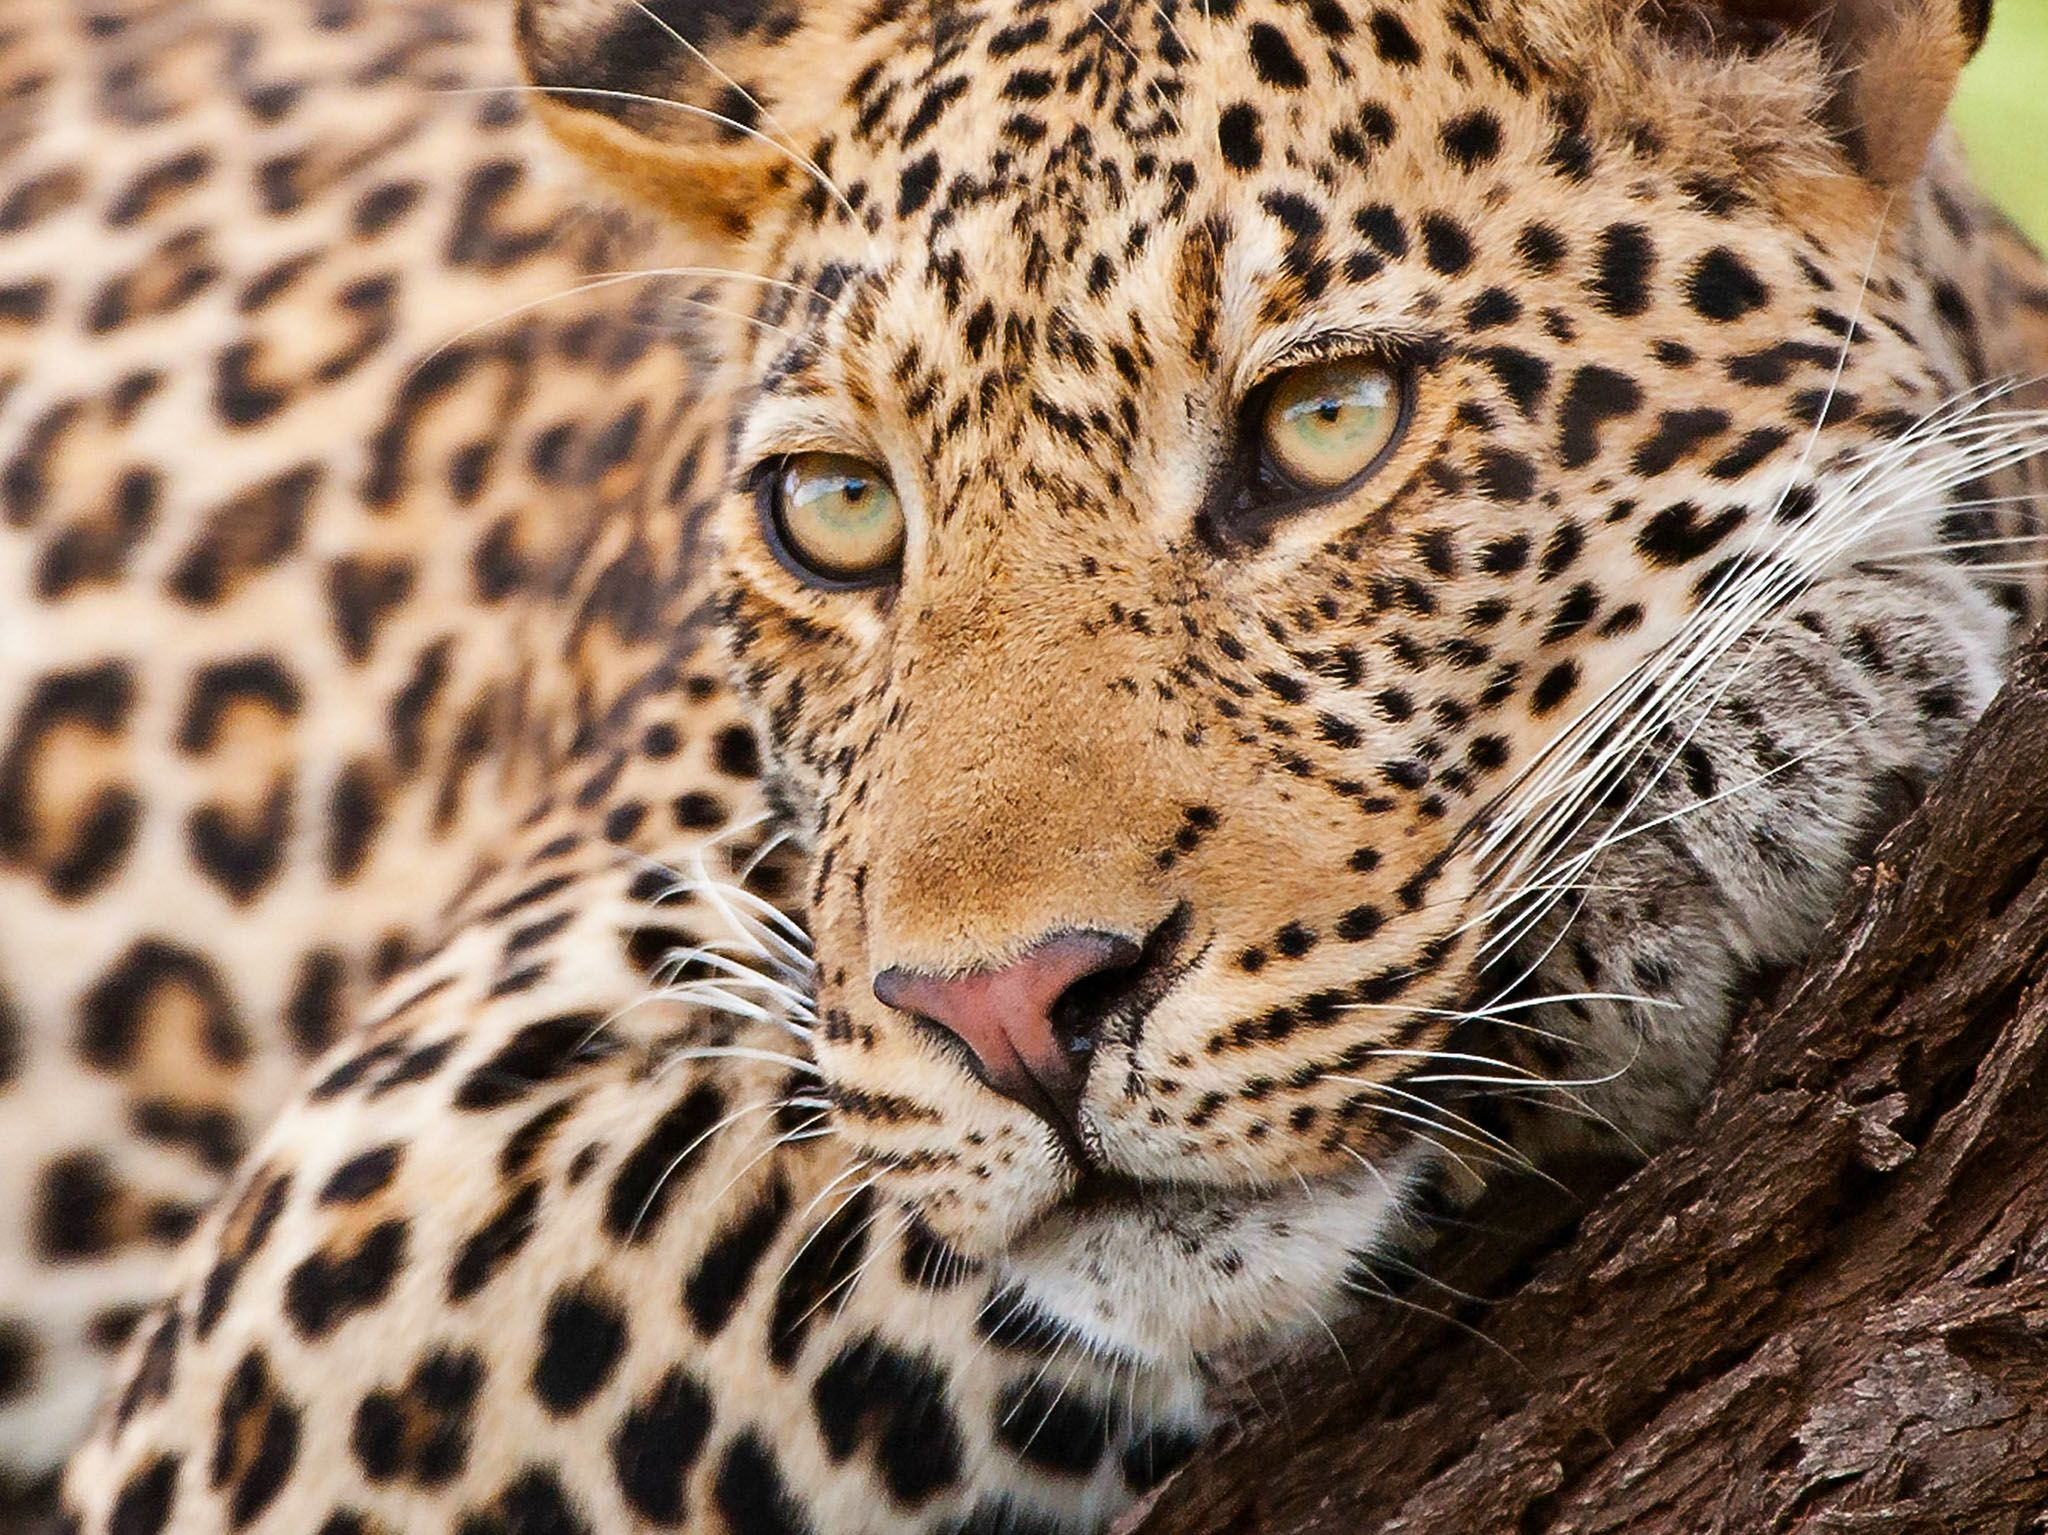 Mpumalanga, South Africa: Resting leopard at Mala Mala Game Reserve. This image is from Africa's... [Photo of the day - July 2017]